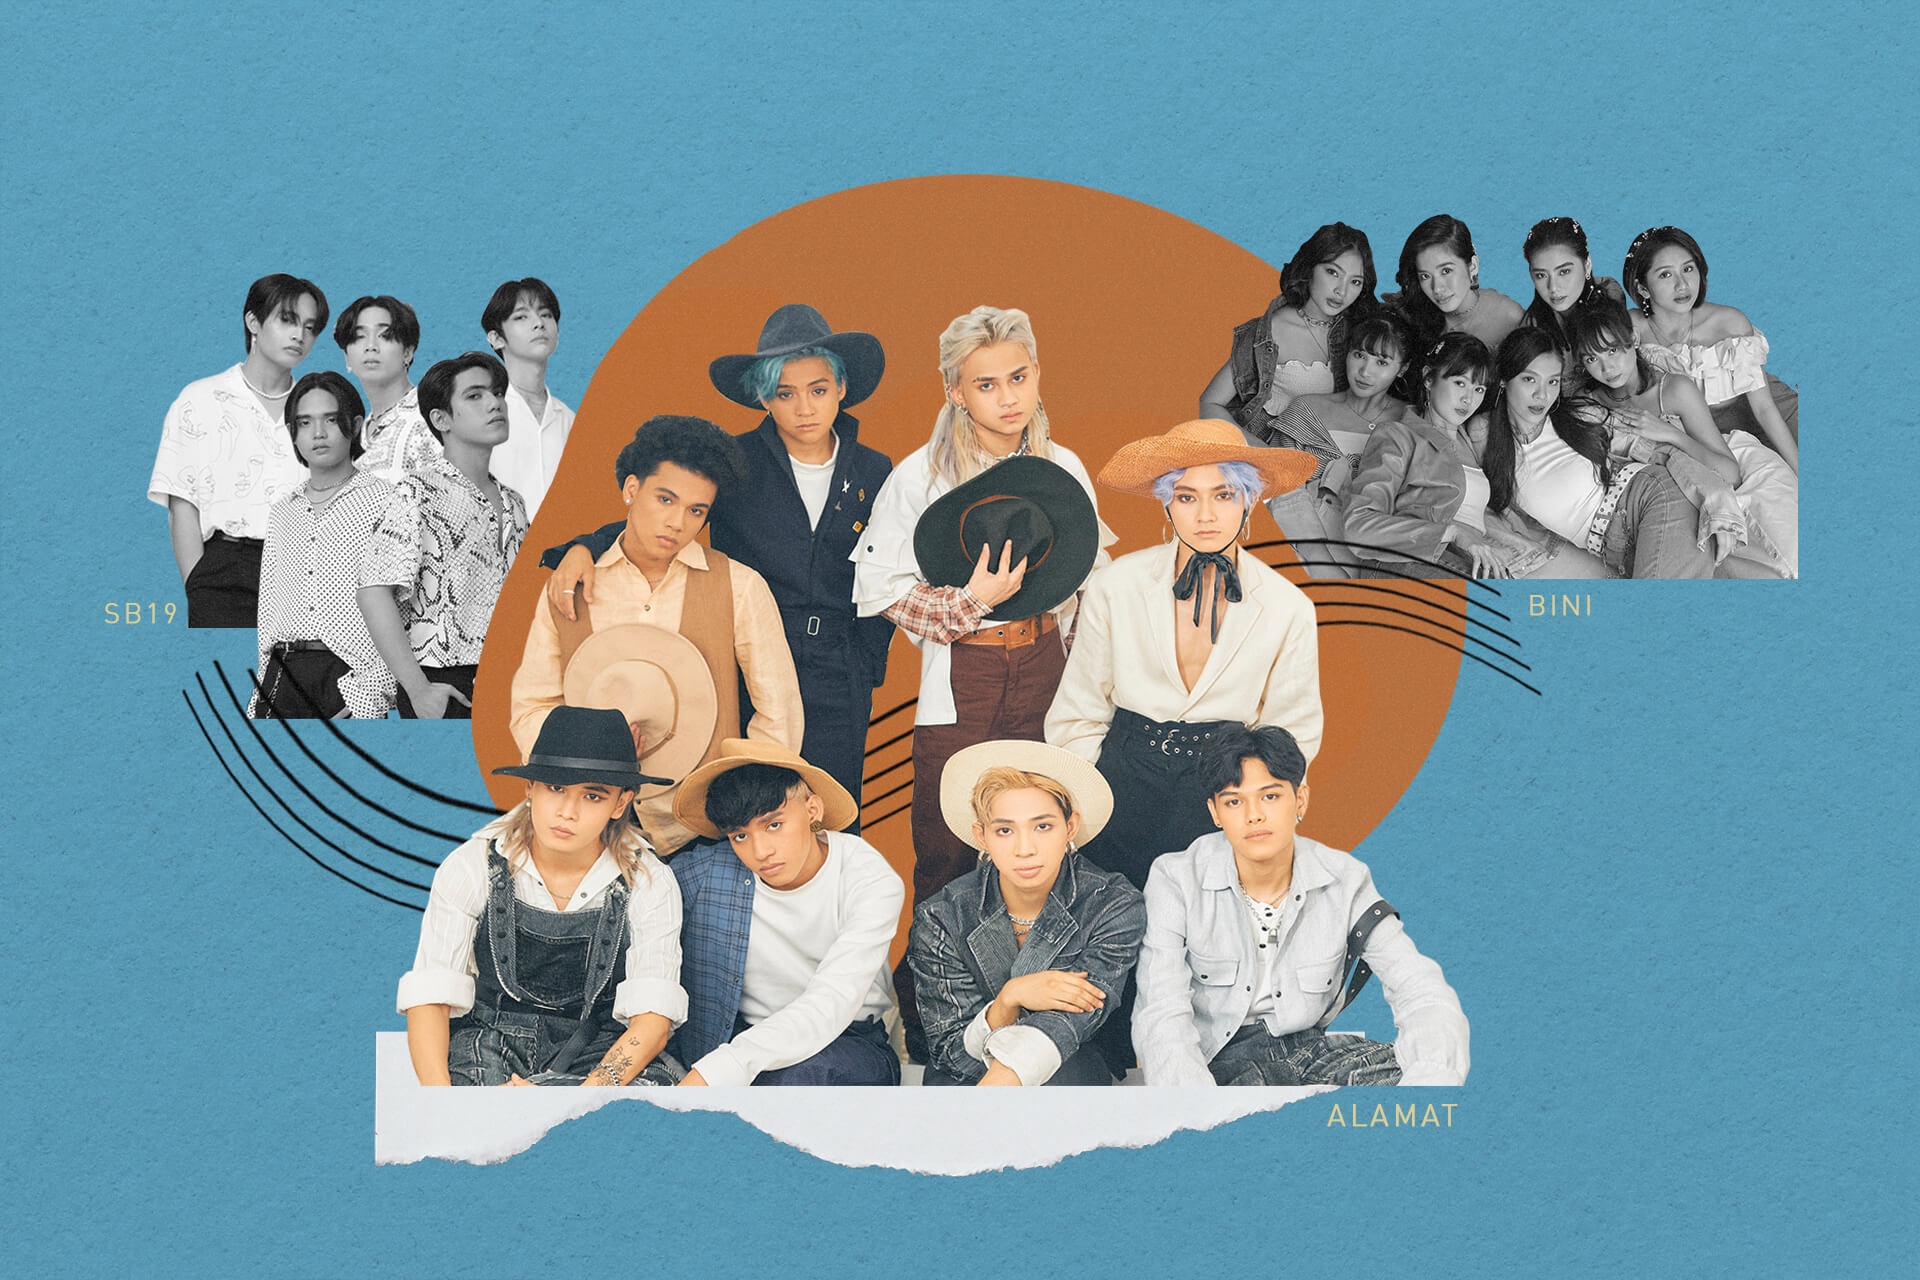 Pinoy Pop is an emerging music genre that excites audiences with unique sounds and explosive performances. But can it be counted among the waves of K-Pop's influence, or does it belong in the roster of OPM?